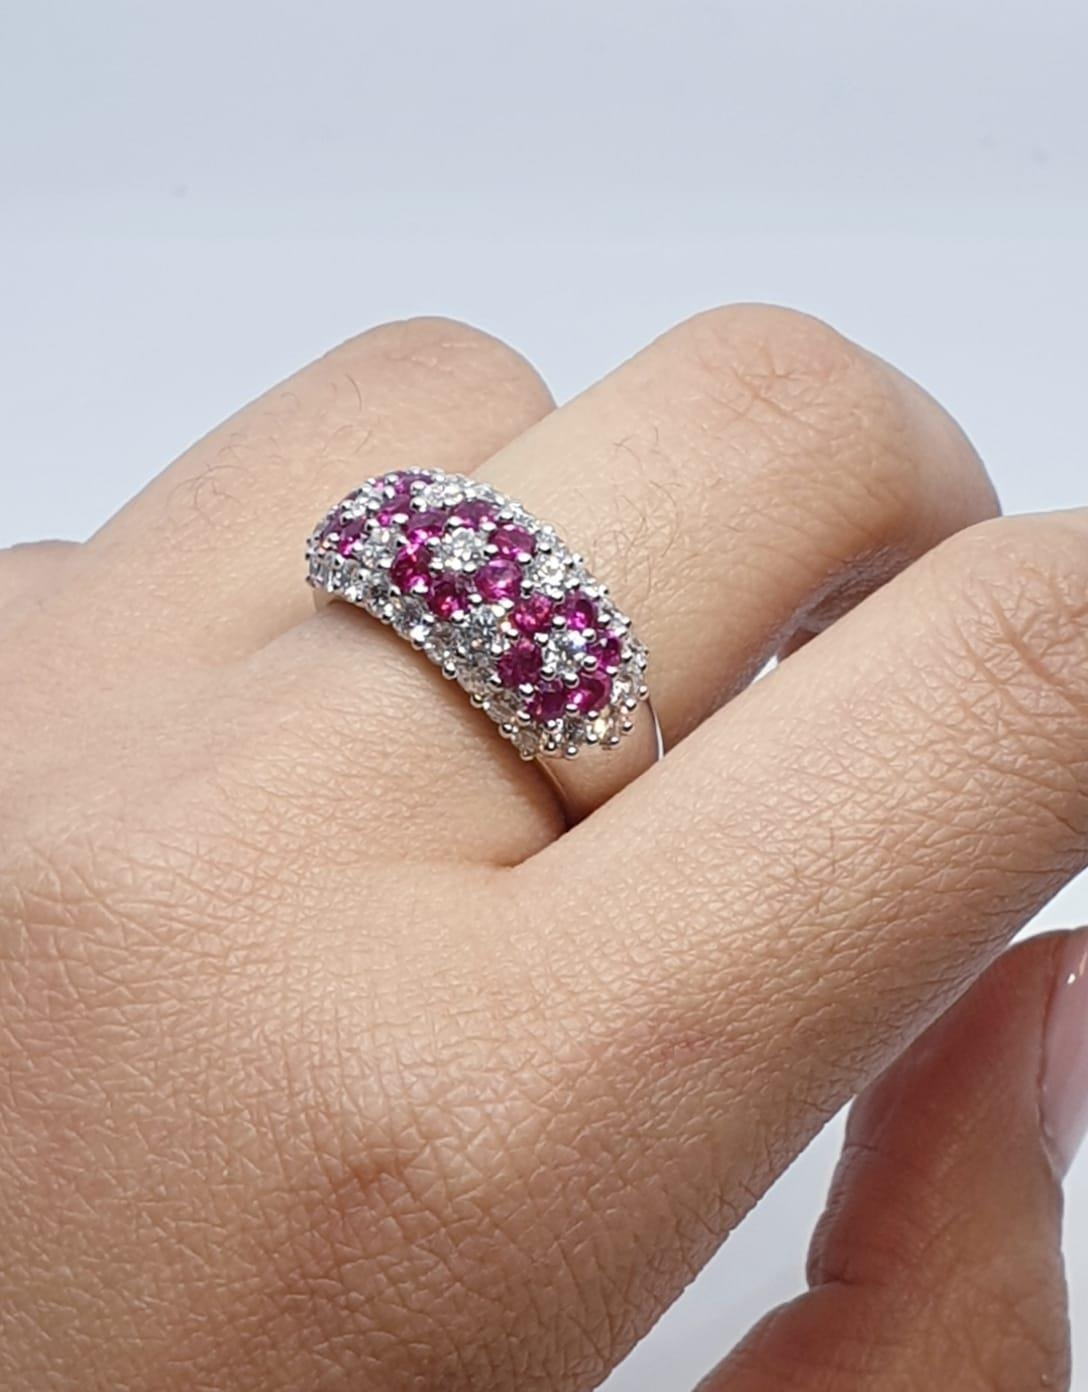 18ct white gold ring with over 1ct ruby and 1.8ct diamonds in flower design, weight 9.39g and size M - Image 8 of 11